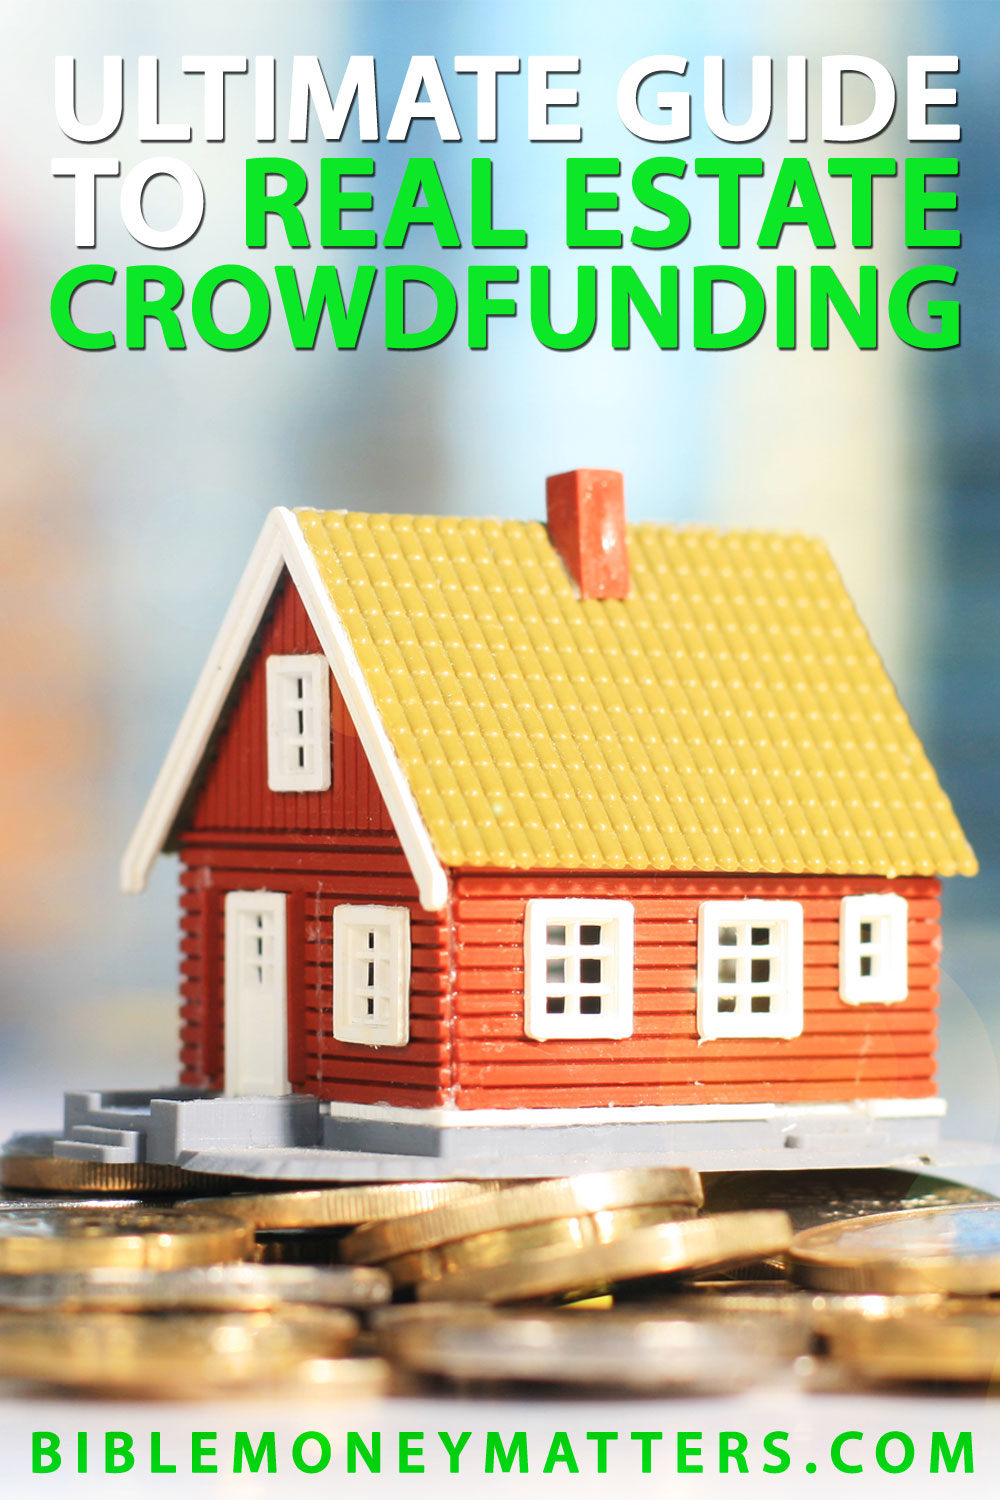 Ultimate Guide To Real Estate Crowdfunding: What Is It And Where Can I Invest?